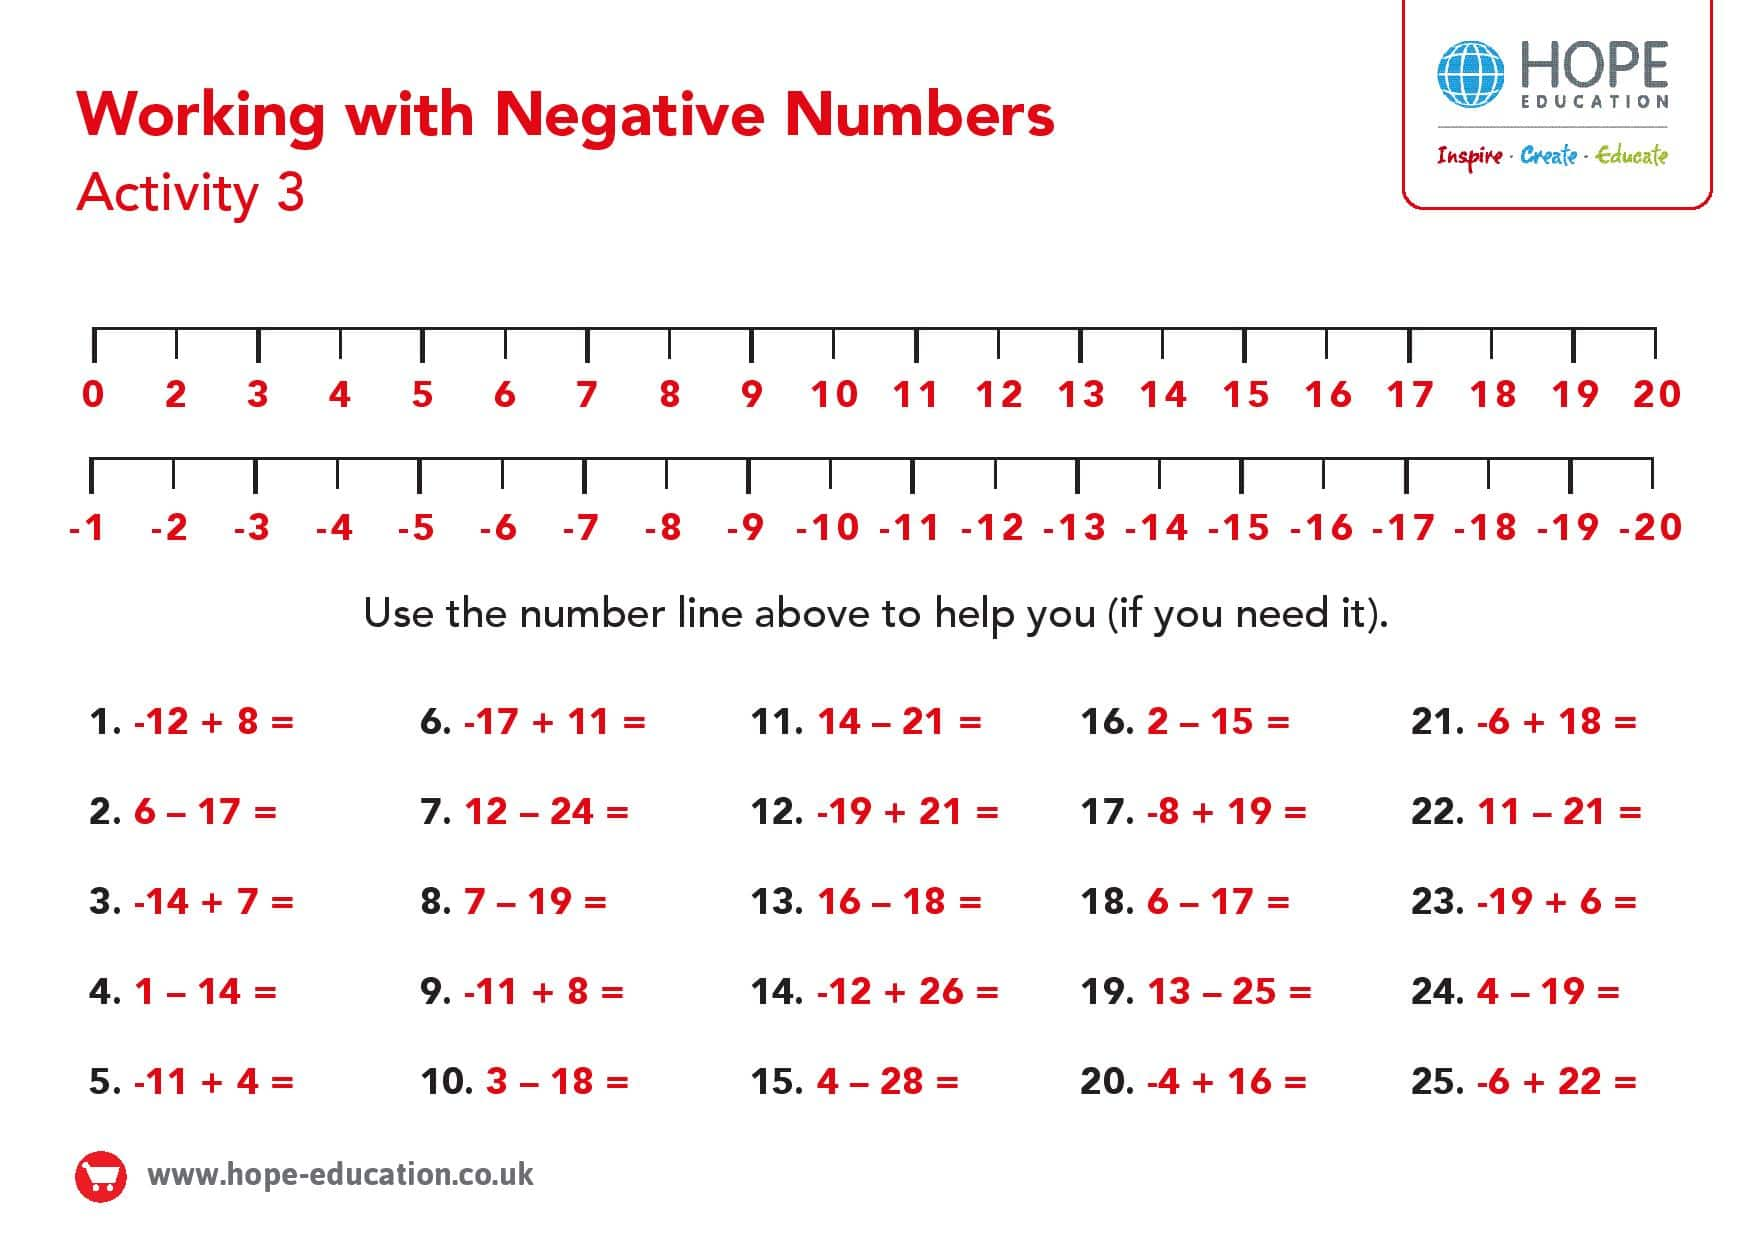 hight resolution of Number line with negative numbers: A printable worksheet - Hope Education  blog